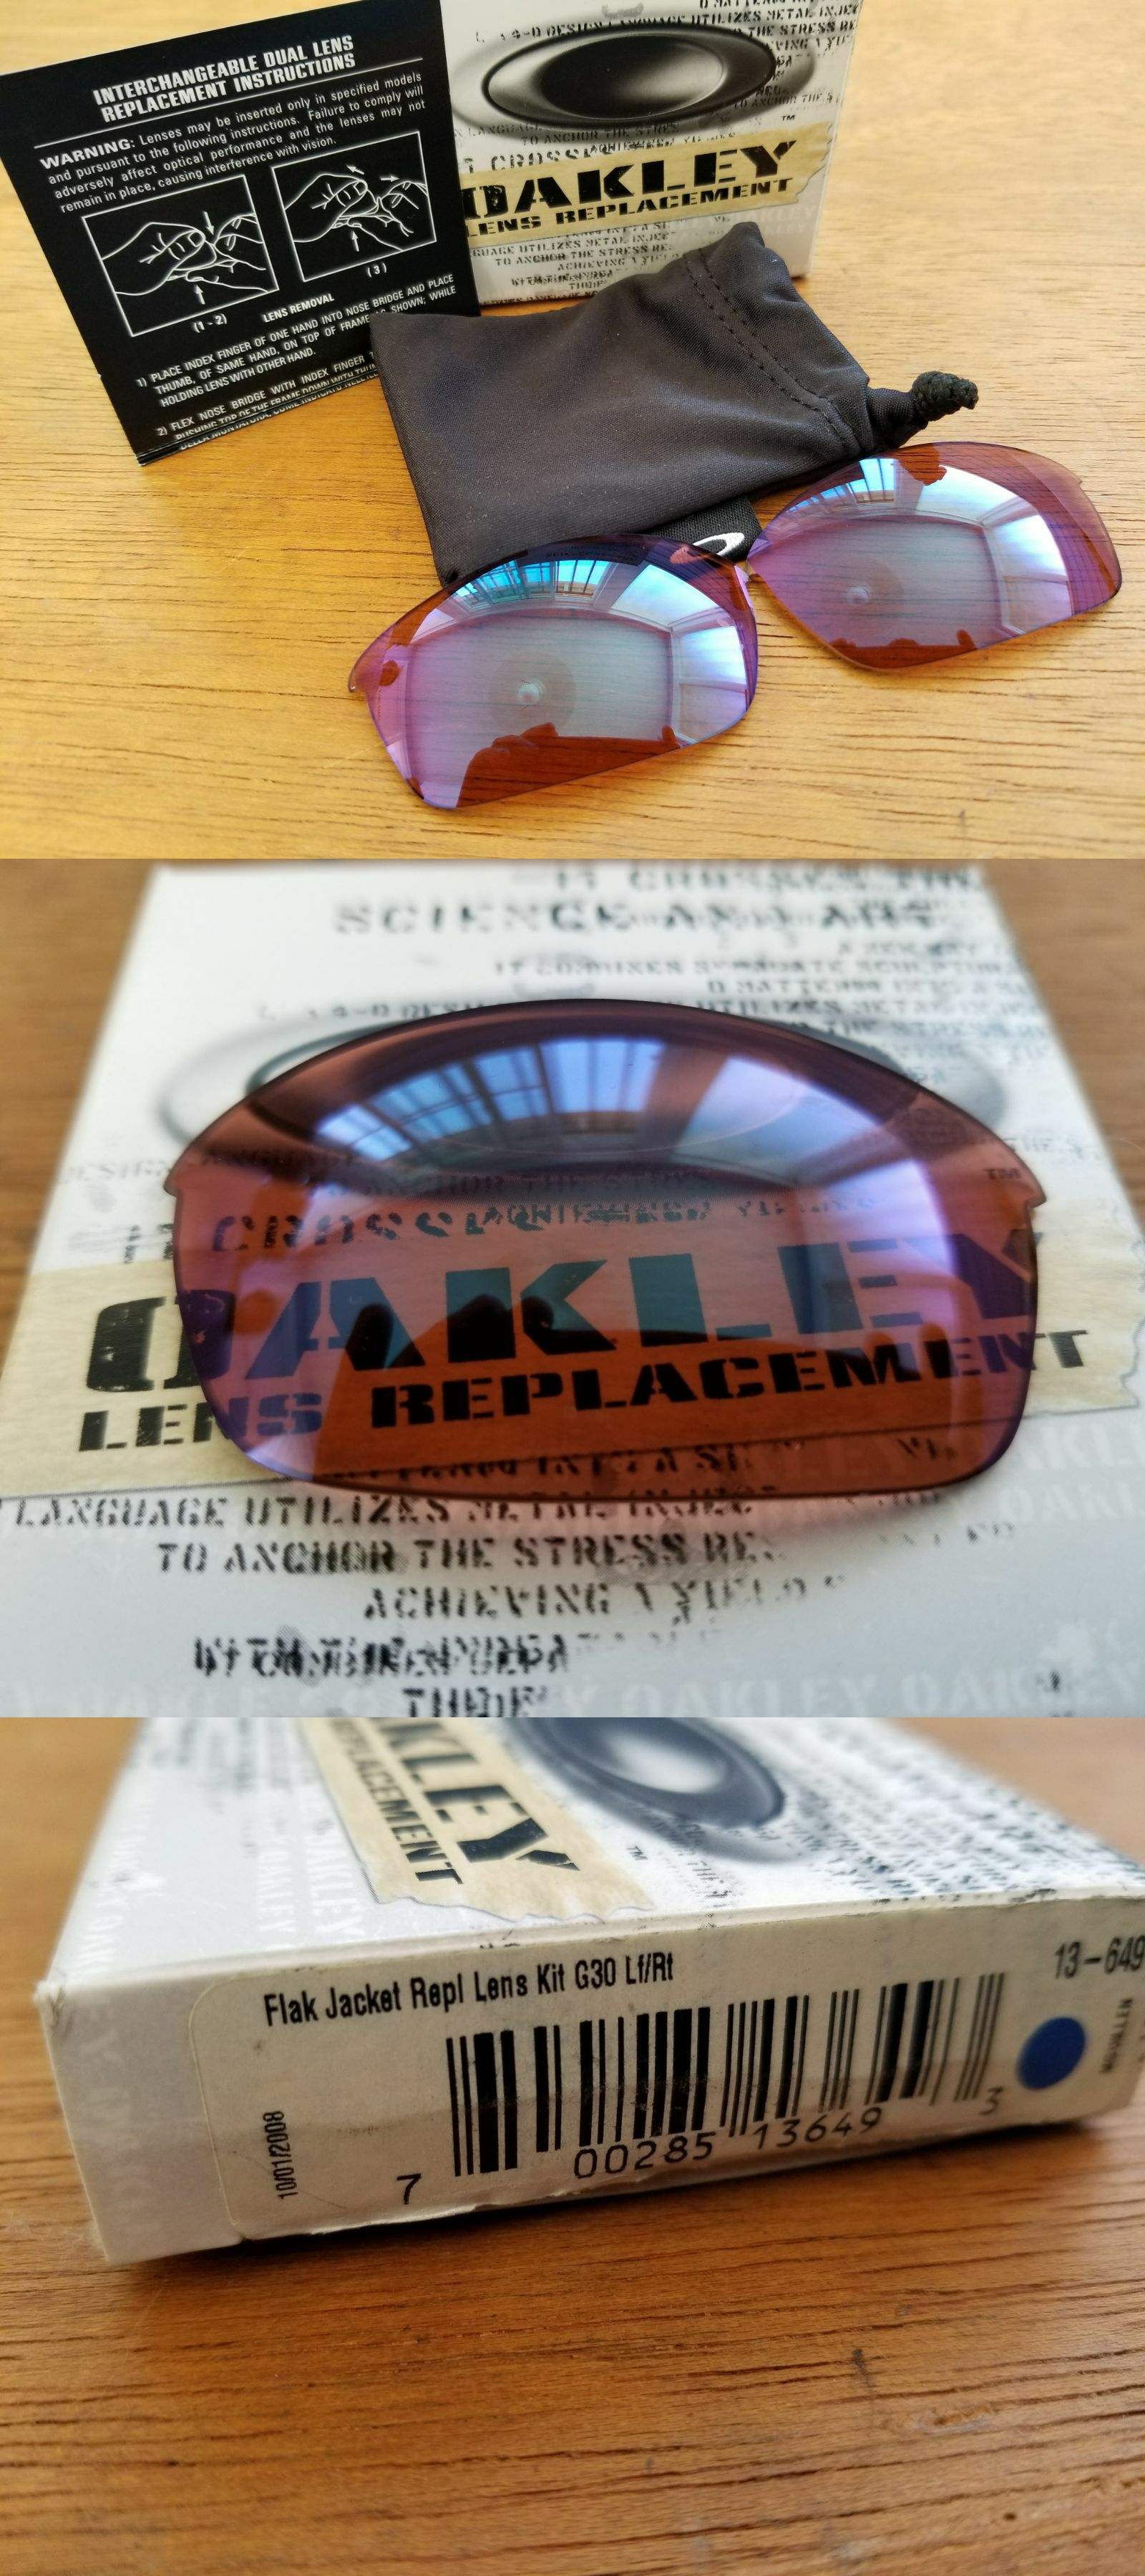 730d78da5a Sunglass Lens Replacements 179194  Authentic Oakley Half Jacket 1.0 G30  Lenses Brand New In Box -  BUY IT NOW ONLY   59.99 on eBay!